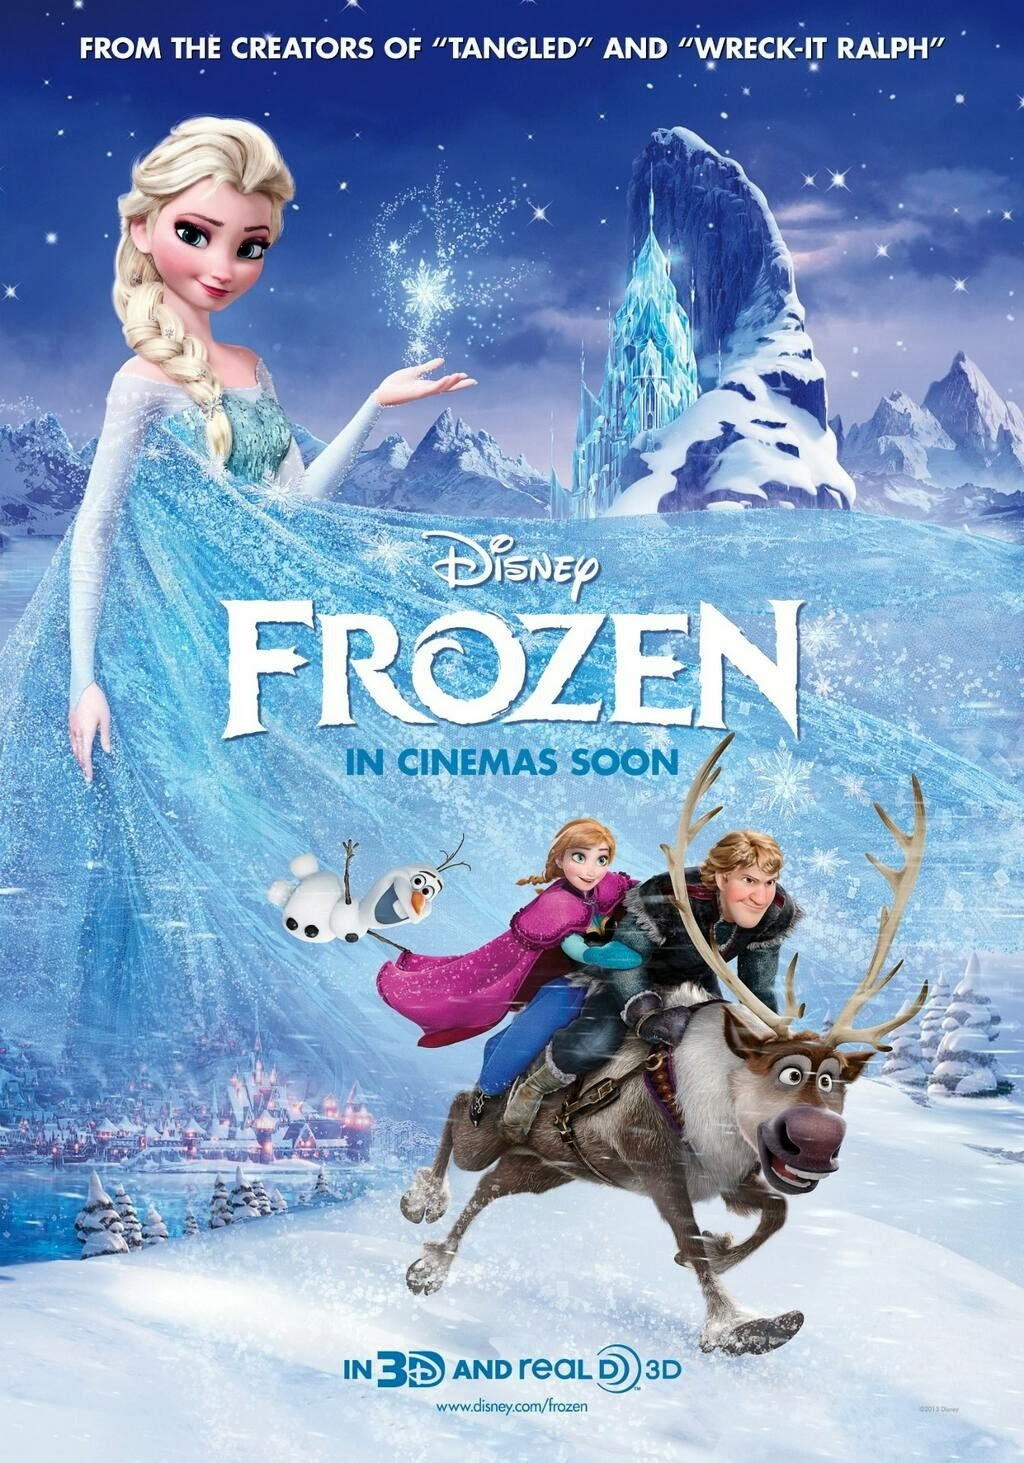 Going to watch Frozen, and 21 other ways to occupy Toddlers while preggy! #free #99cent #clevernest #maternity #roundup #bedrest #sickday #preschool #thirdtrimester